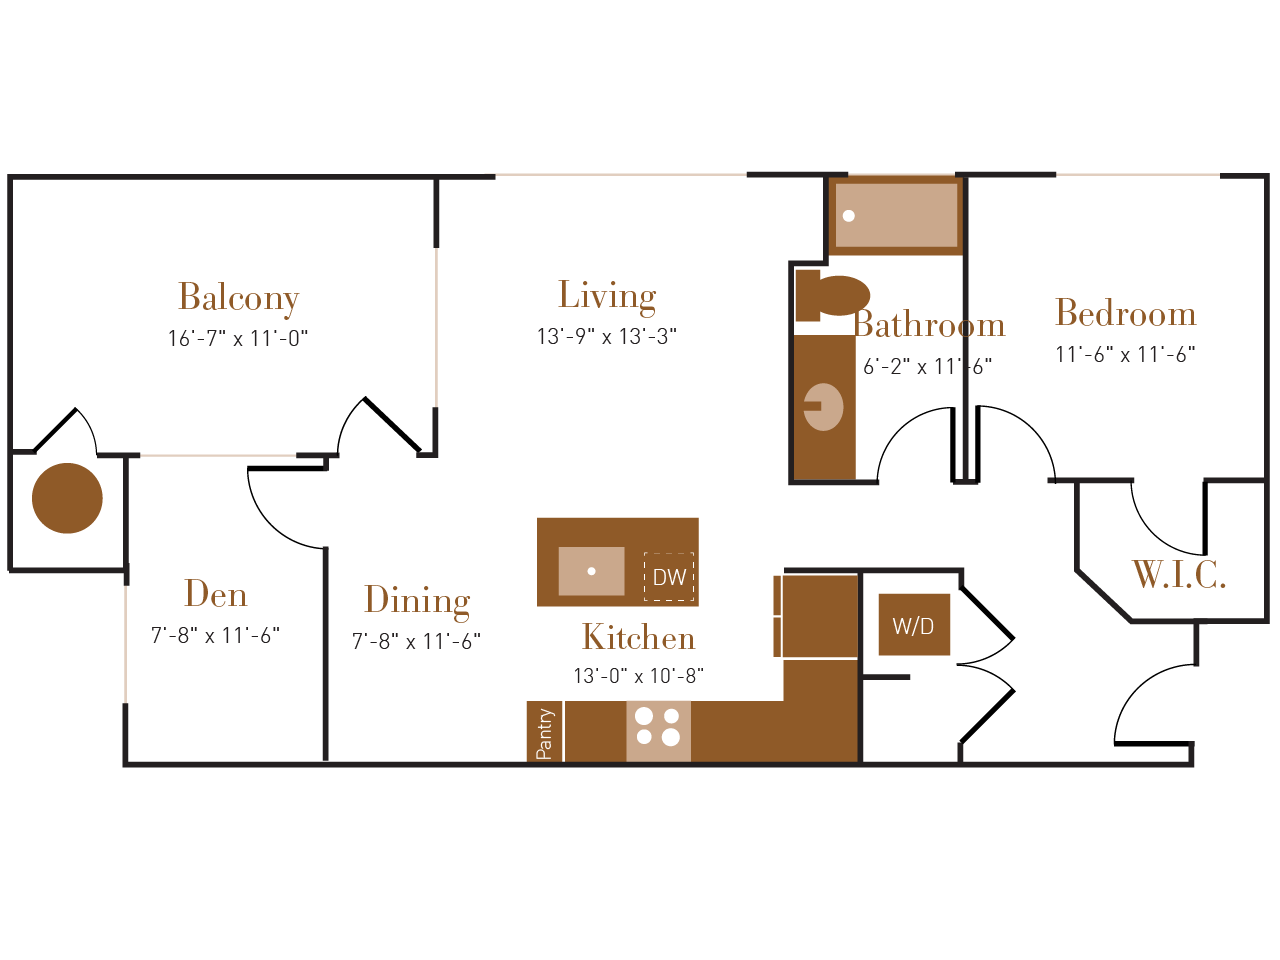 A Four A floor plan diagram. One bedroom, one bathroom, an open kitchen dining and living area, a den, a balcony, and a washer dryer.